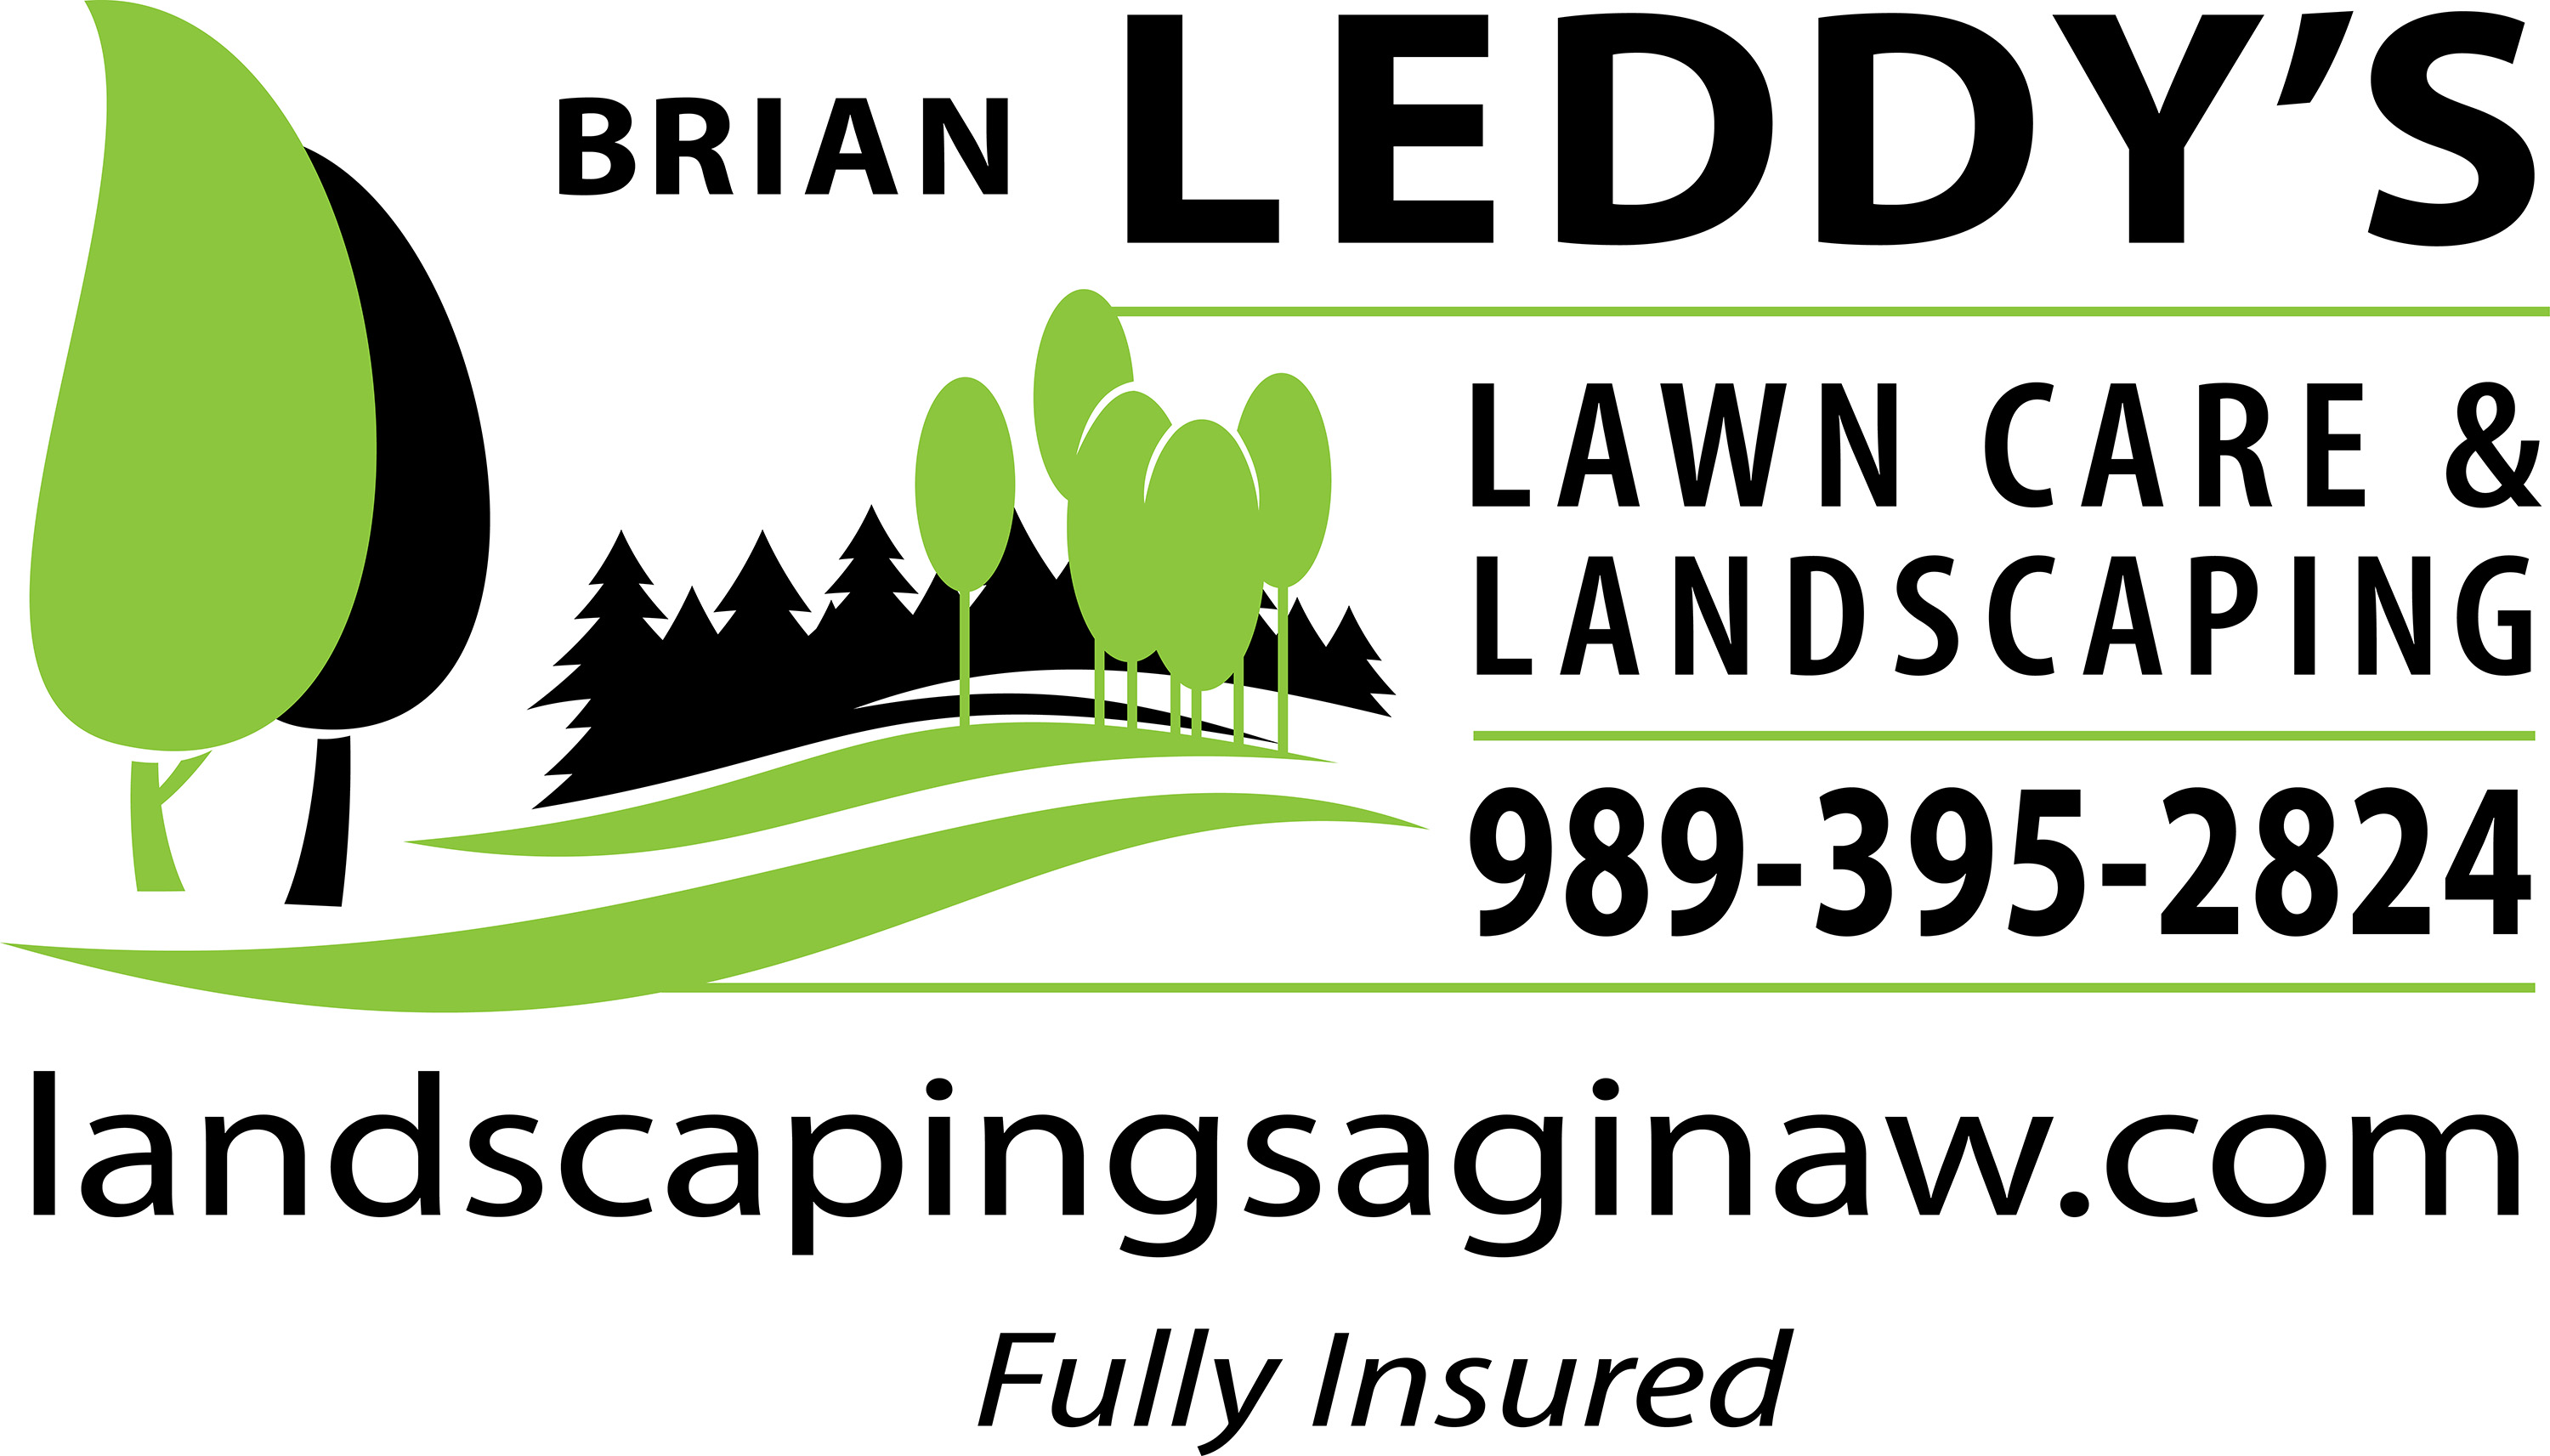 Brian Leddy's Lawn Care & Landscaping